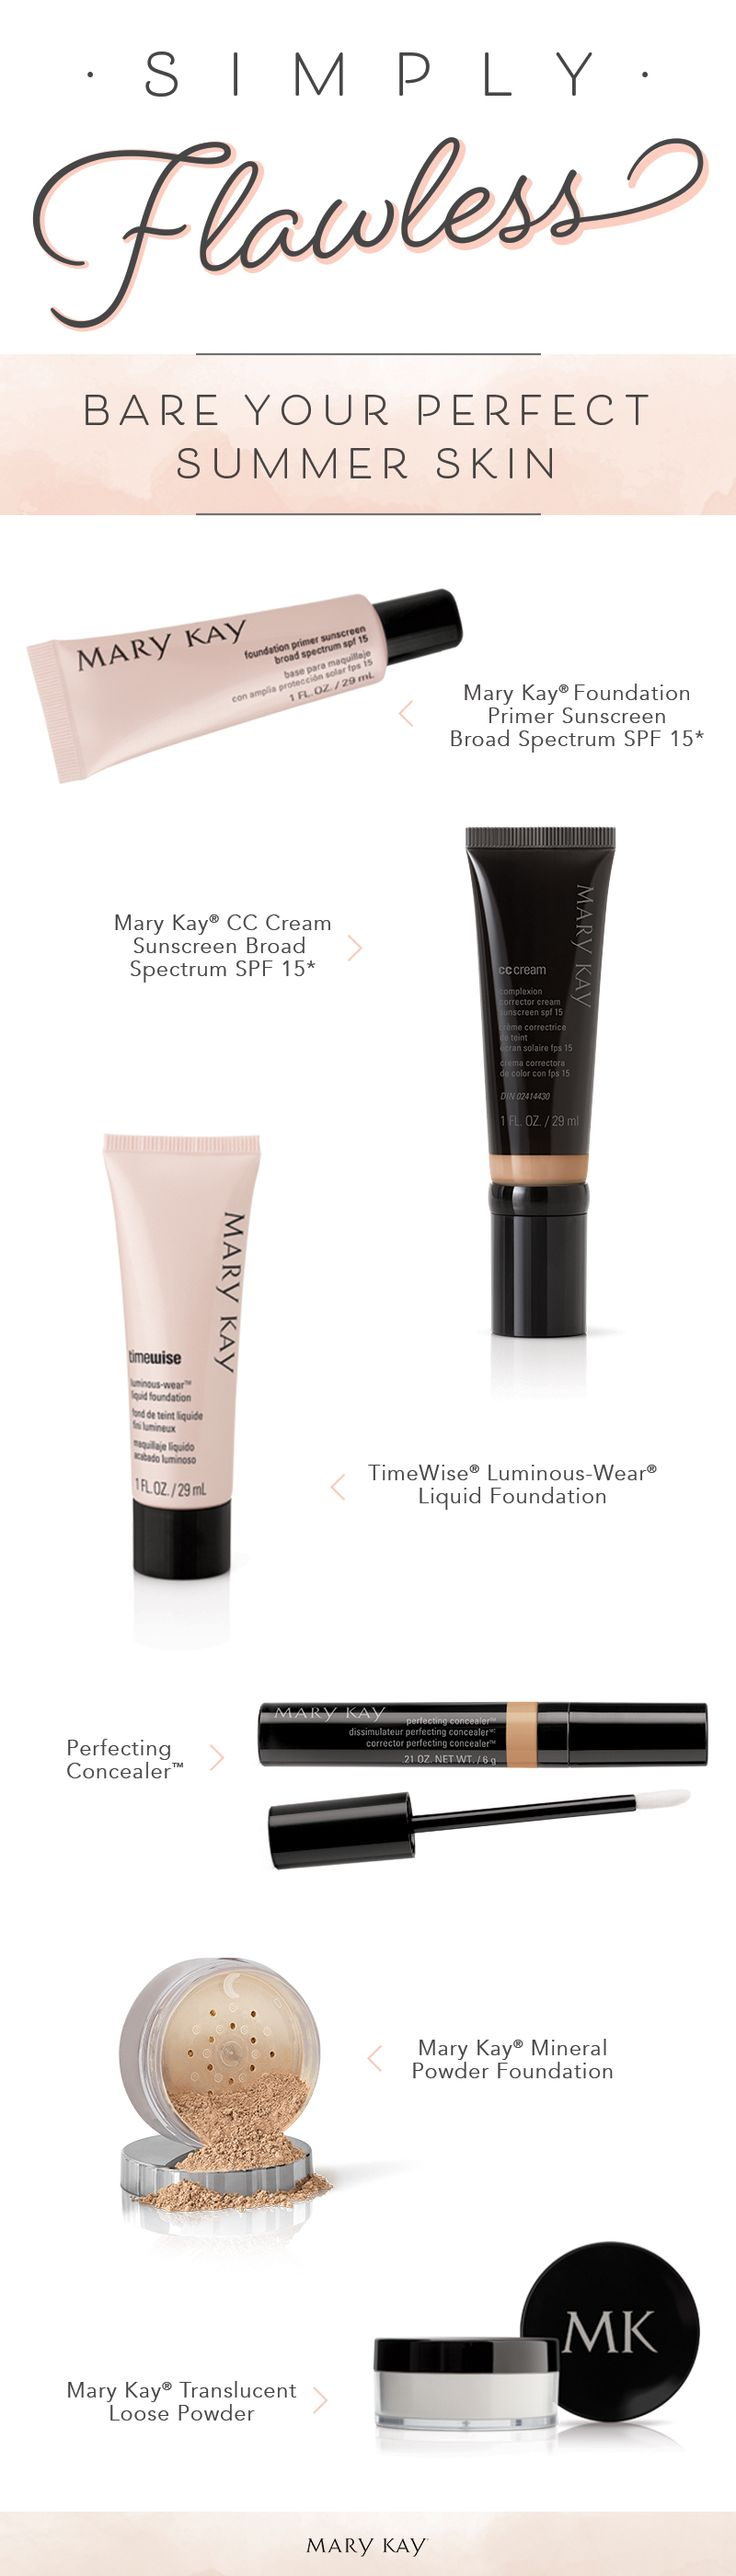 Summer beauty is all about keeping things simple. Achieve a gorgeous foundation application with products like Mary Kay® Foundation Primer Sunscreen Broad Spectrum SPF 15*, Mary Kay® CC Cream Sunscreen Broad Spectrum SPF 15*, TimeWise® Luminous-Wear® Liquid Foundation and more!